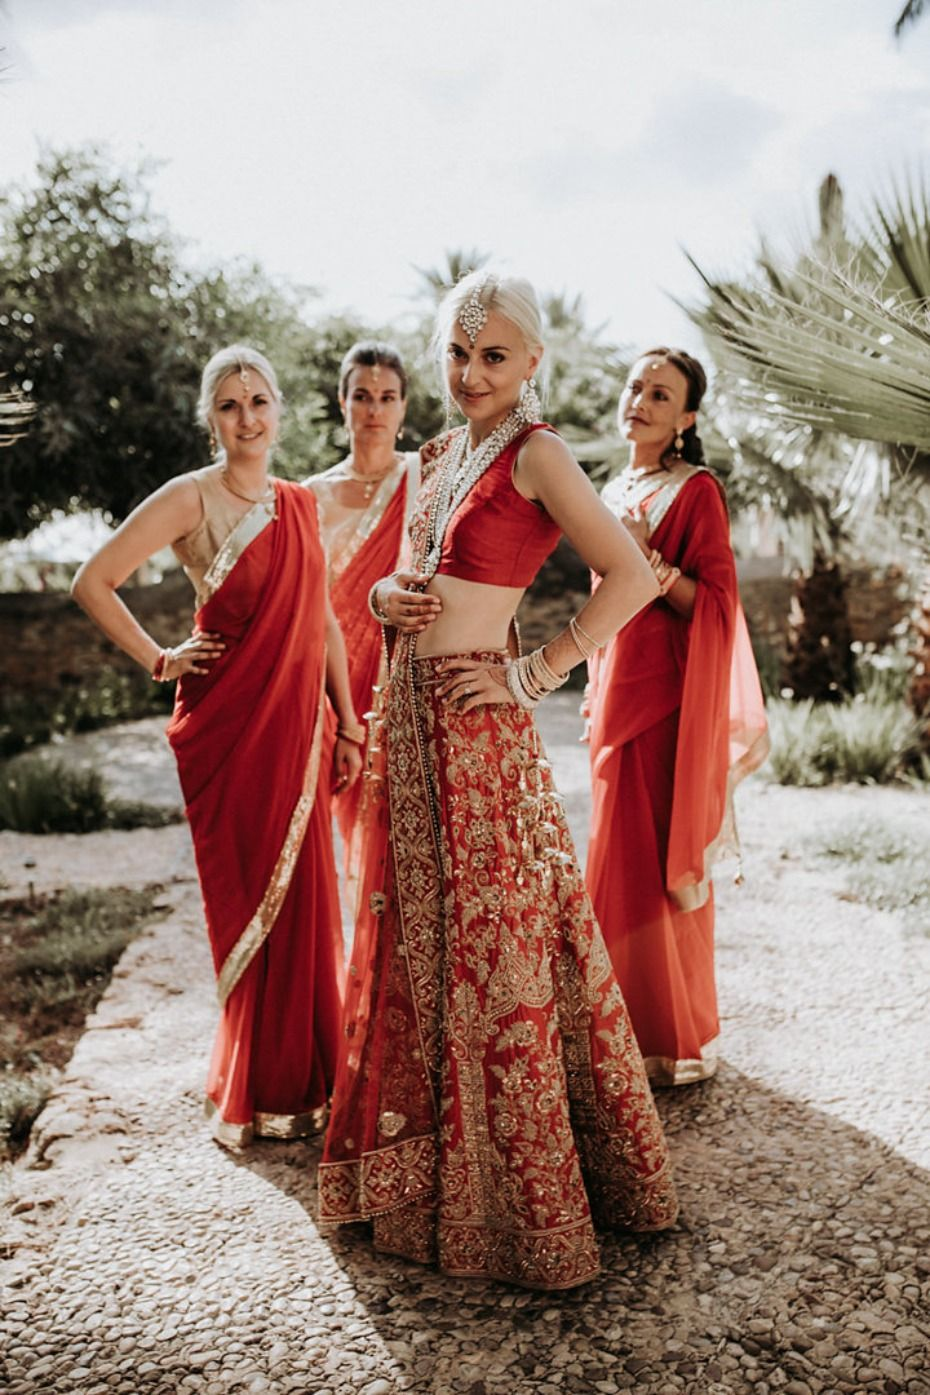 Two Cultures Beautifully Married Into One Wedding Day Indian Bridesmaid Dresses Indian Bridesmaids Indian Wedding Outfits [ 1395 x 930 Pixel ]